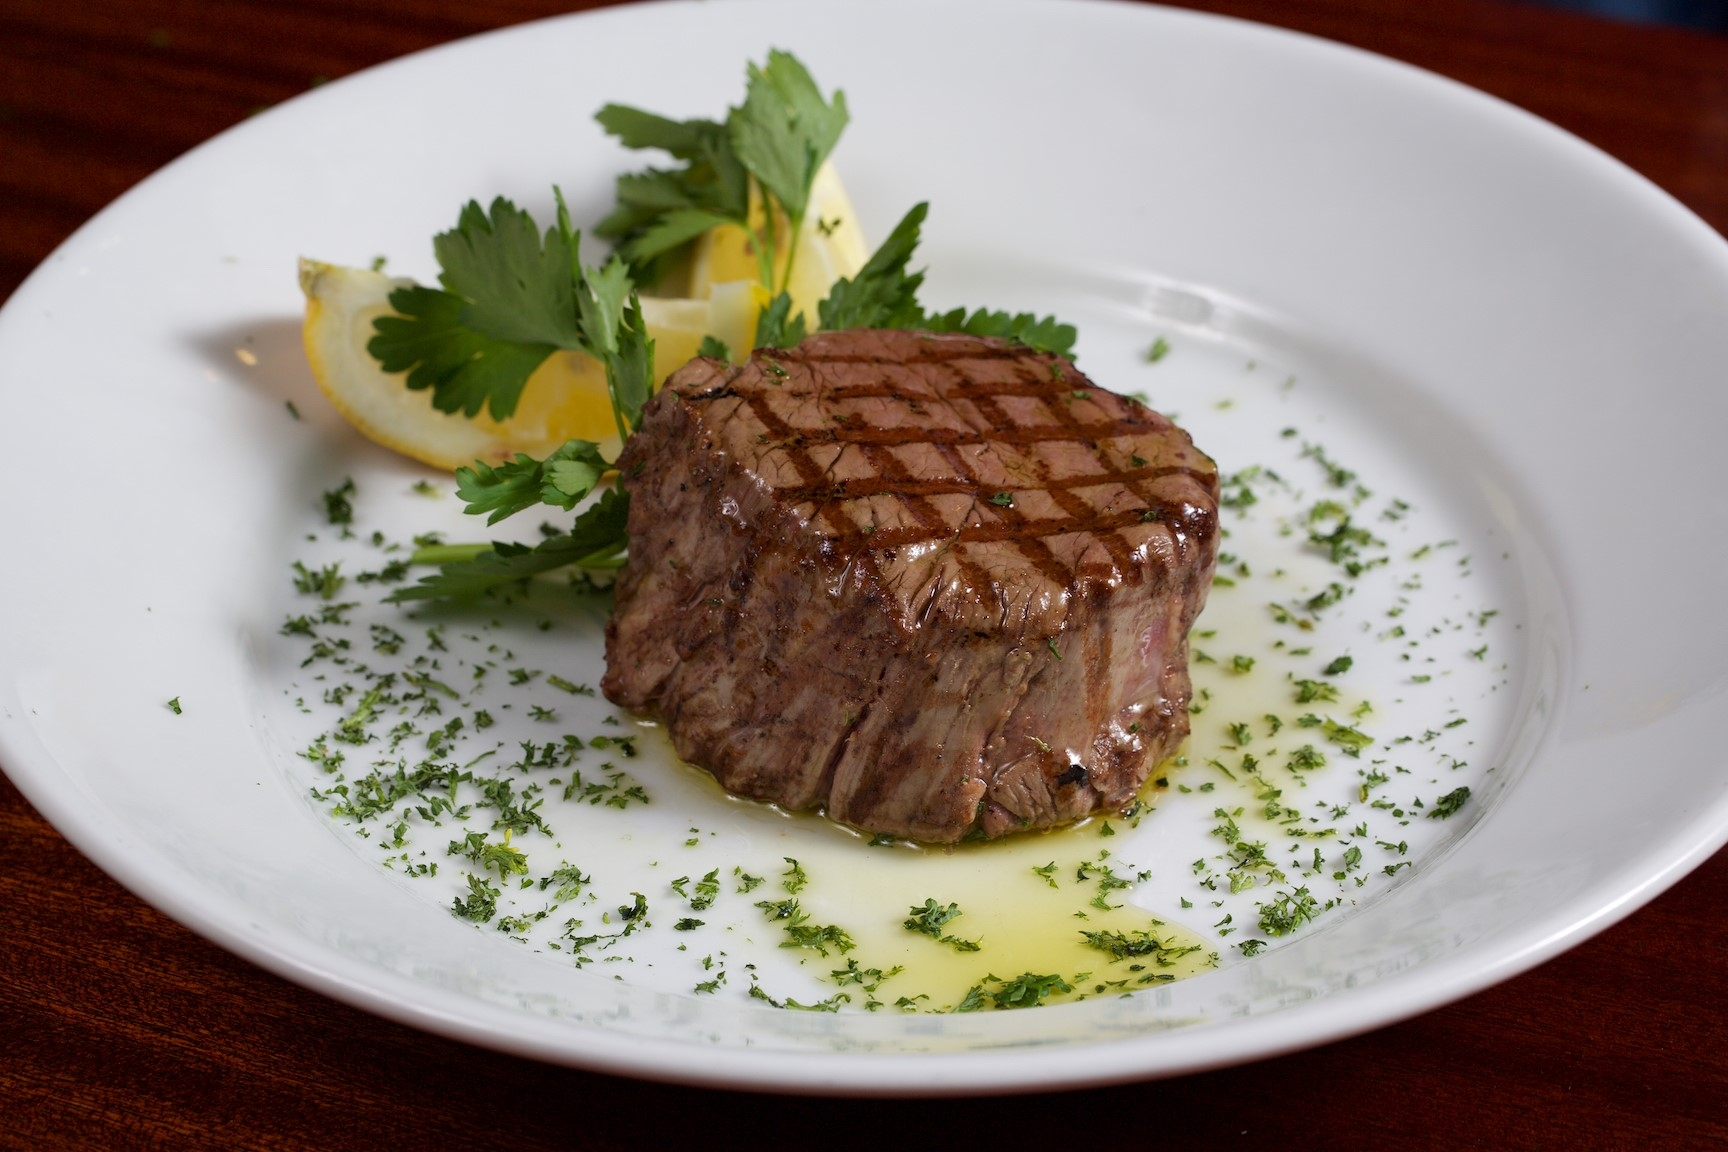 123 ITALIAN FINEST CUISINE (5) MEATS AND CHICKEN VEAL LIVER 008914 (Custom)